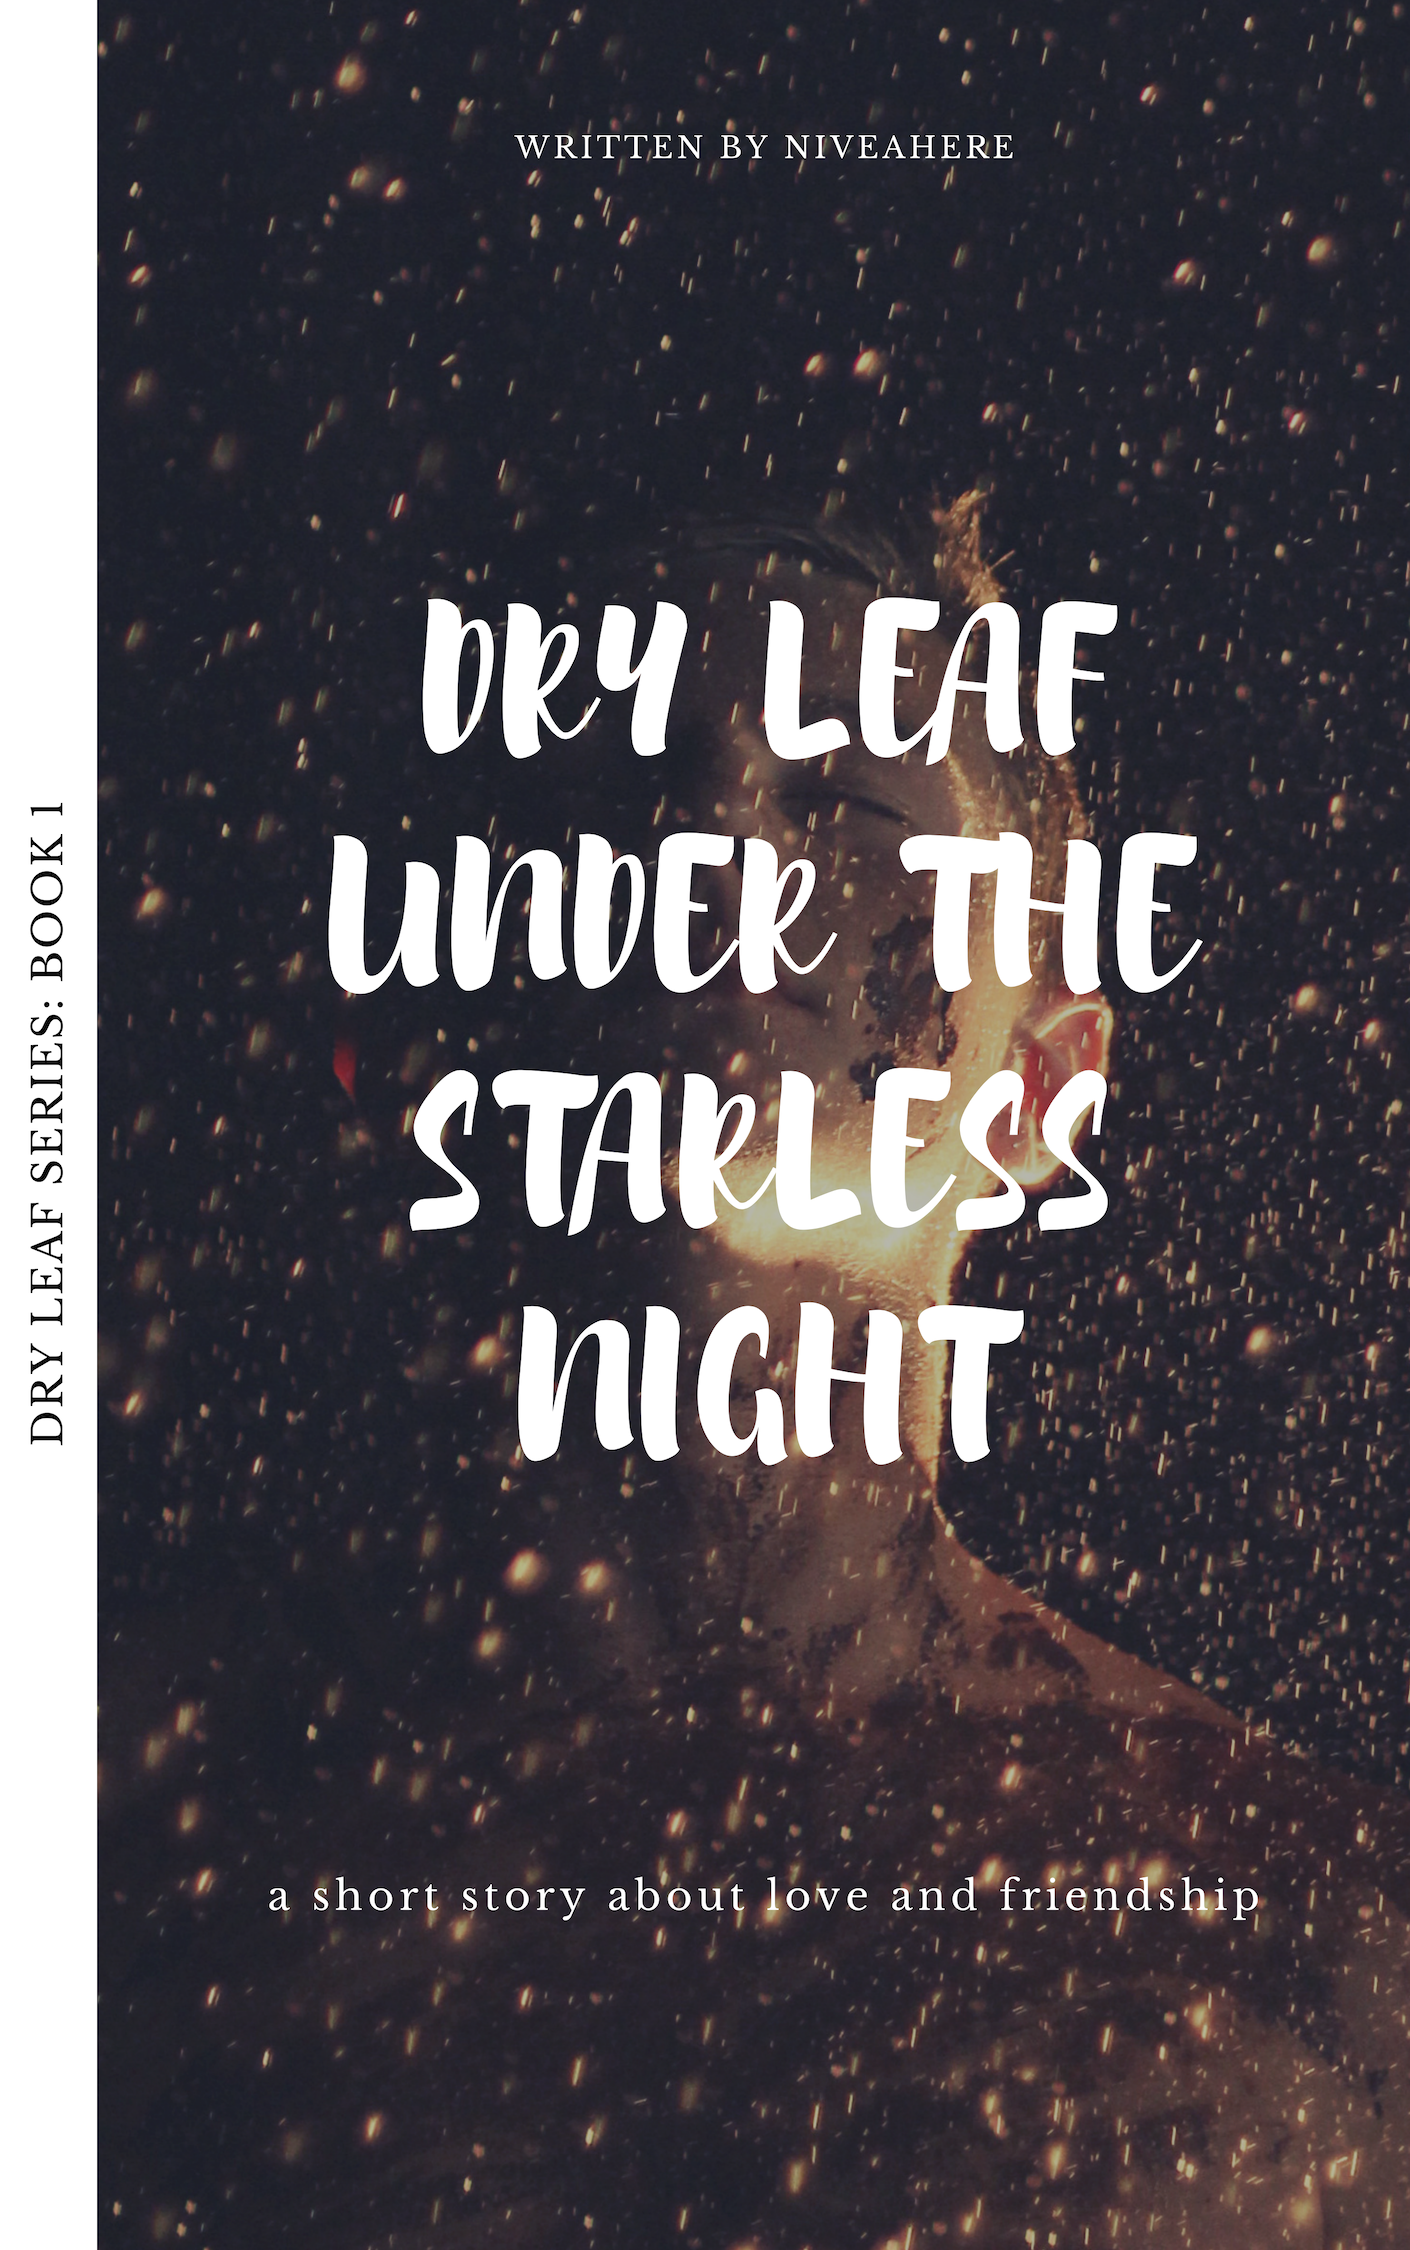 Dry Leaf Under The Starless Night